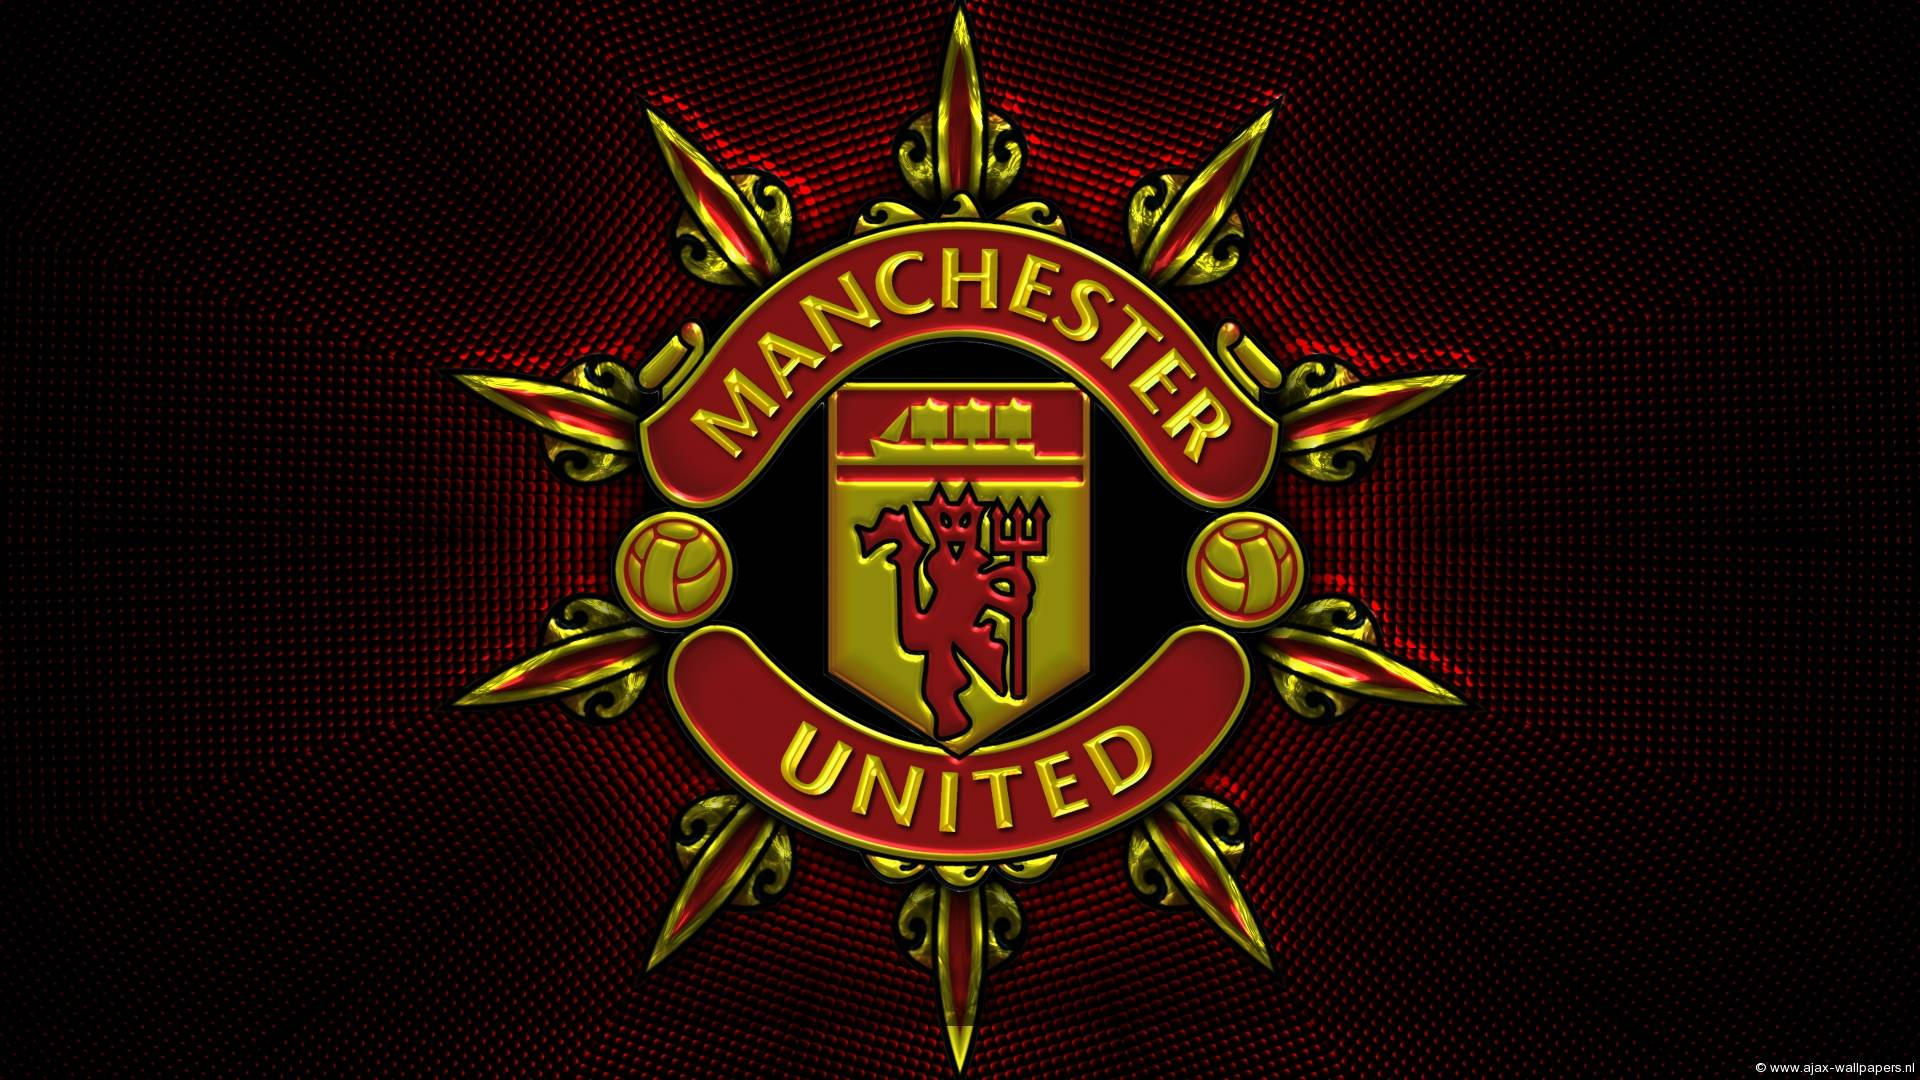 Wallpaper Manchester United Collection For Free Download 1920x1080